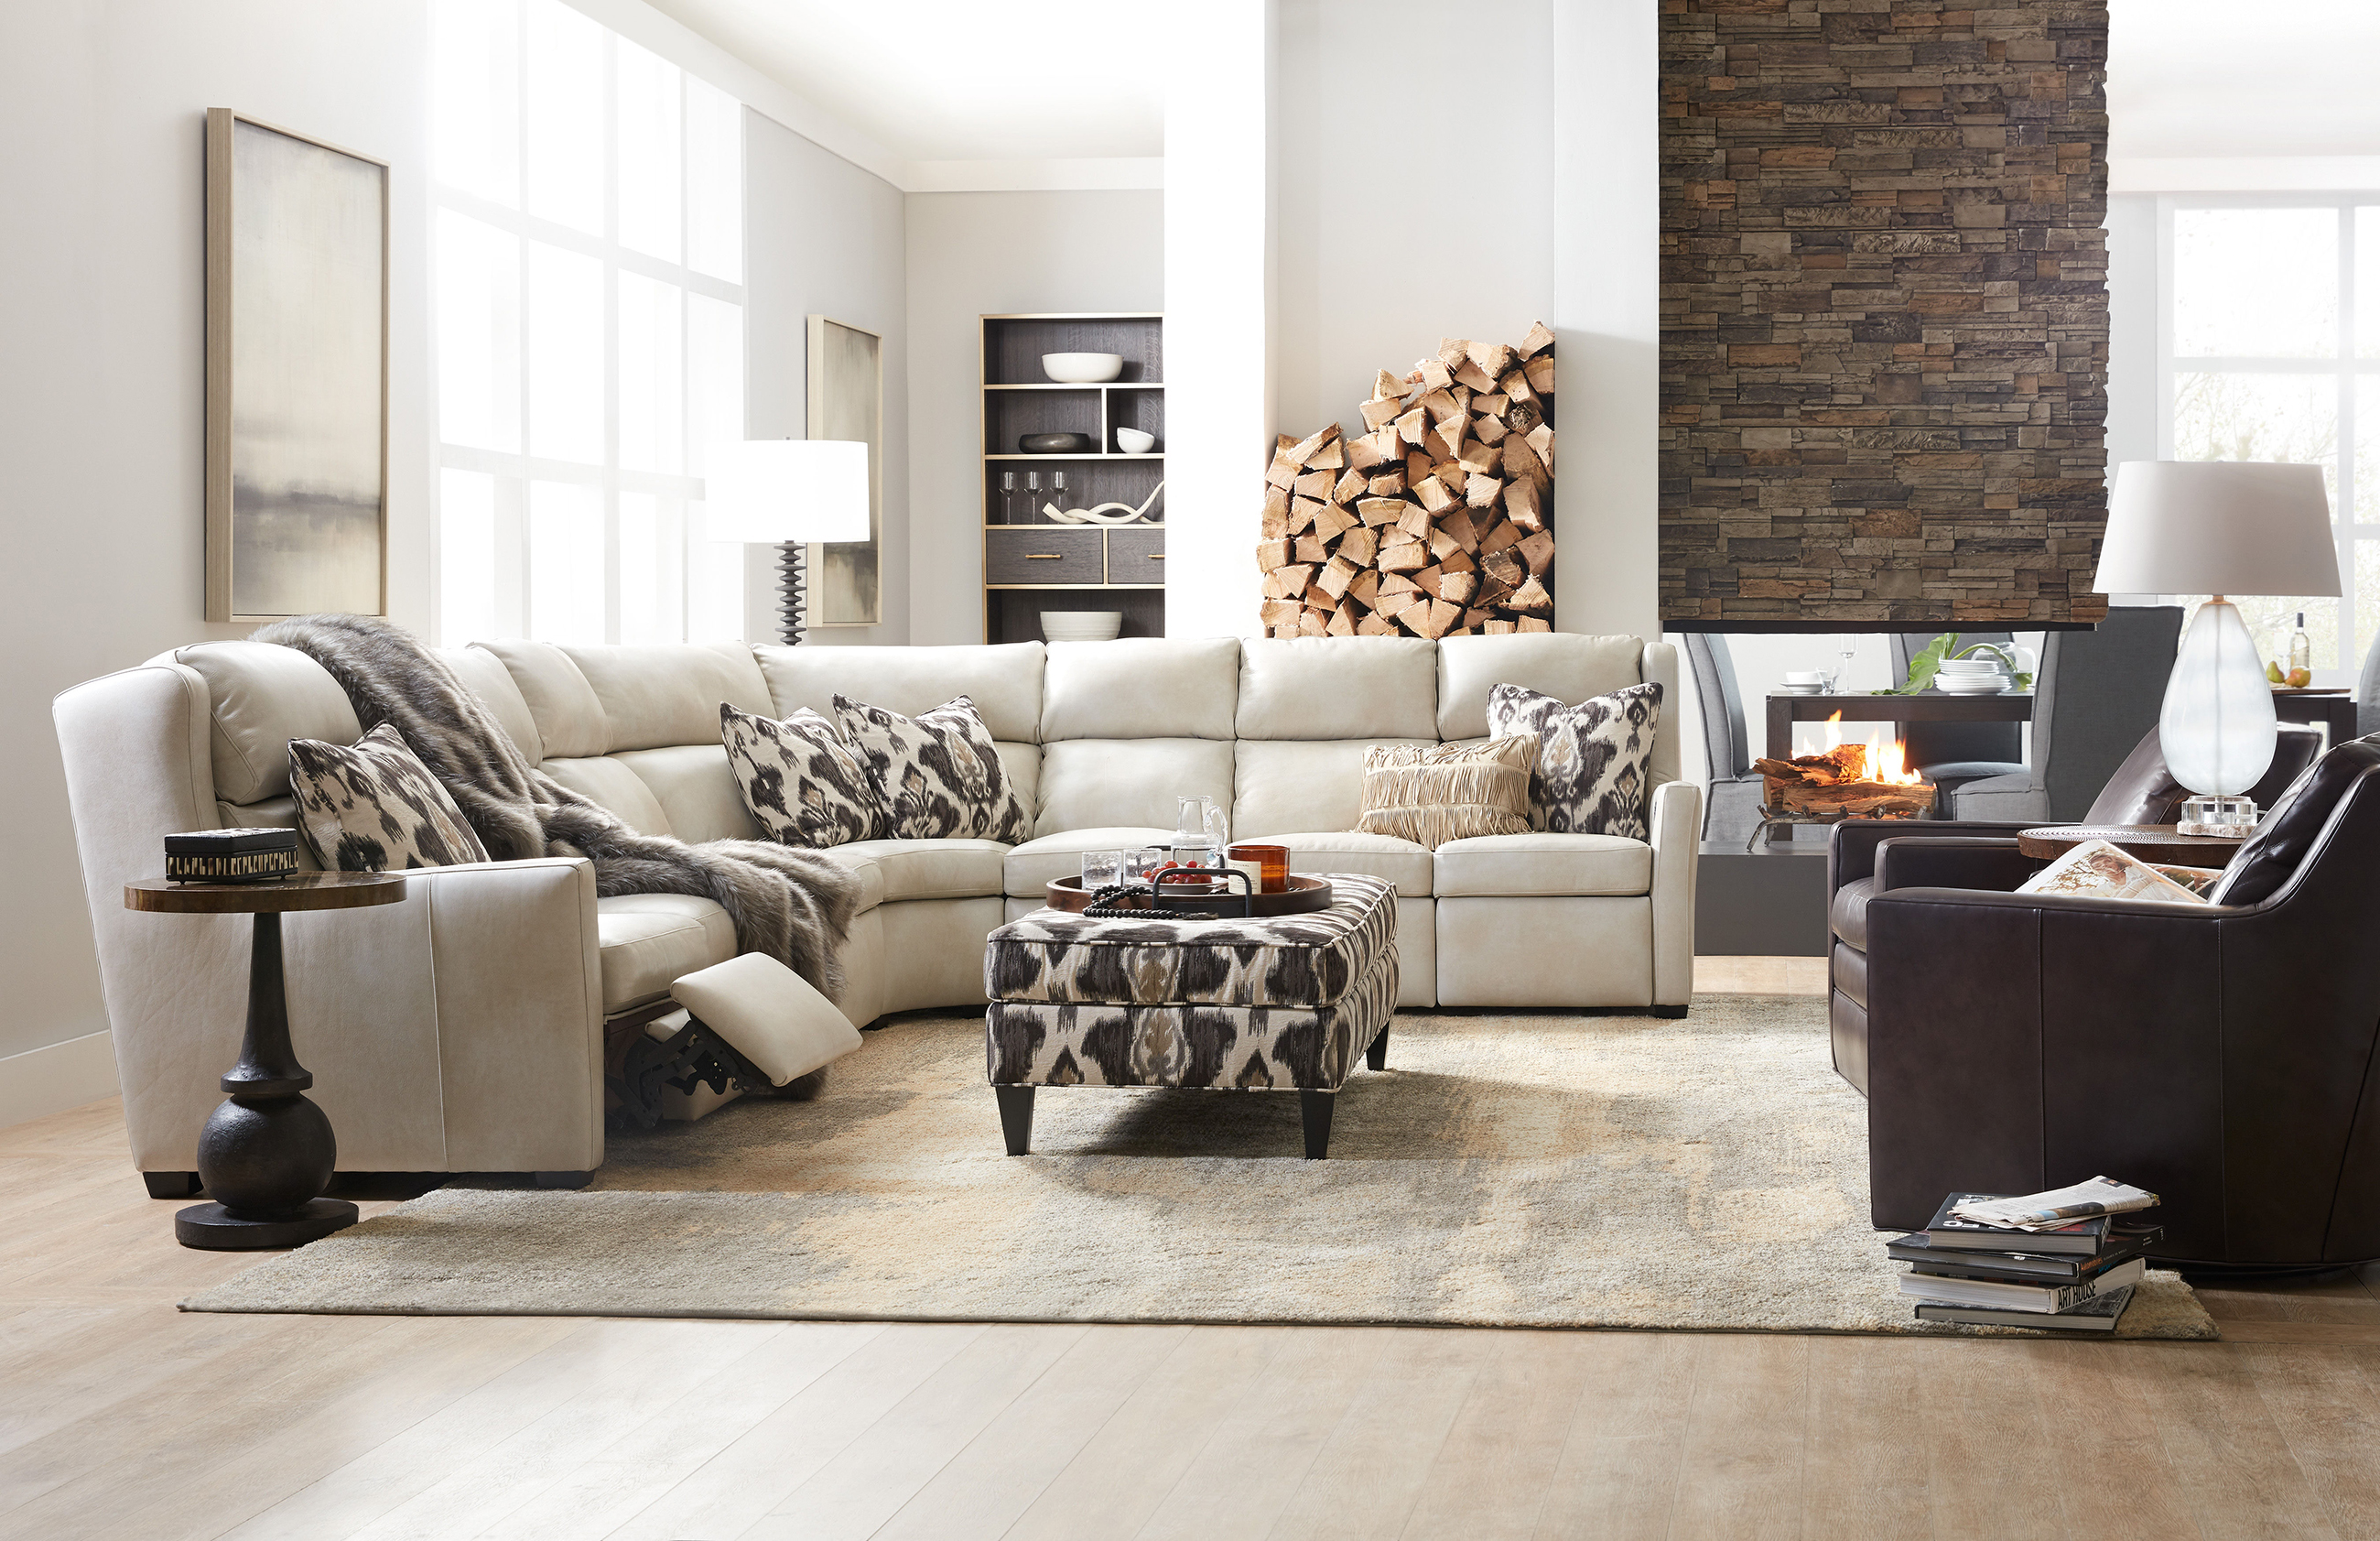 Motion Furniture in Calgary – Power vs Manual Recliners